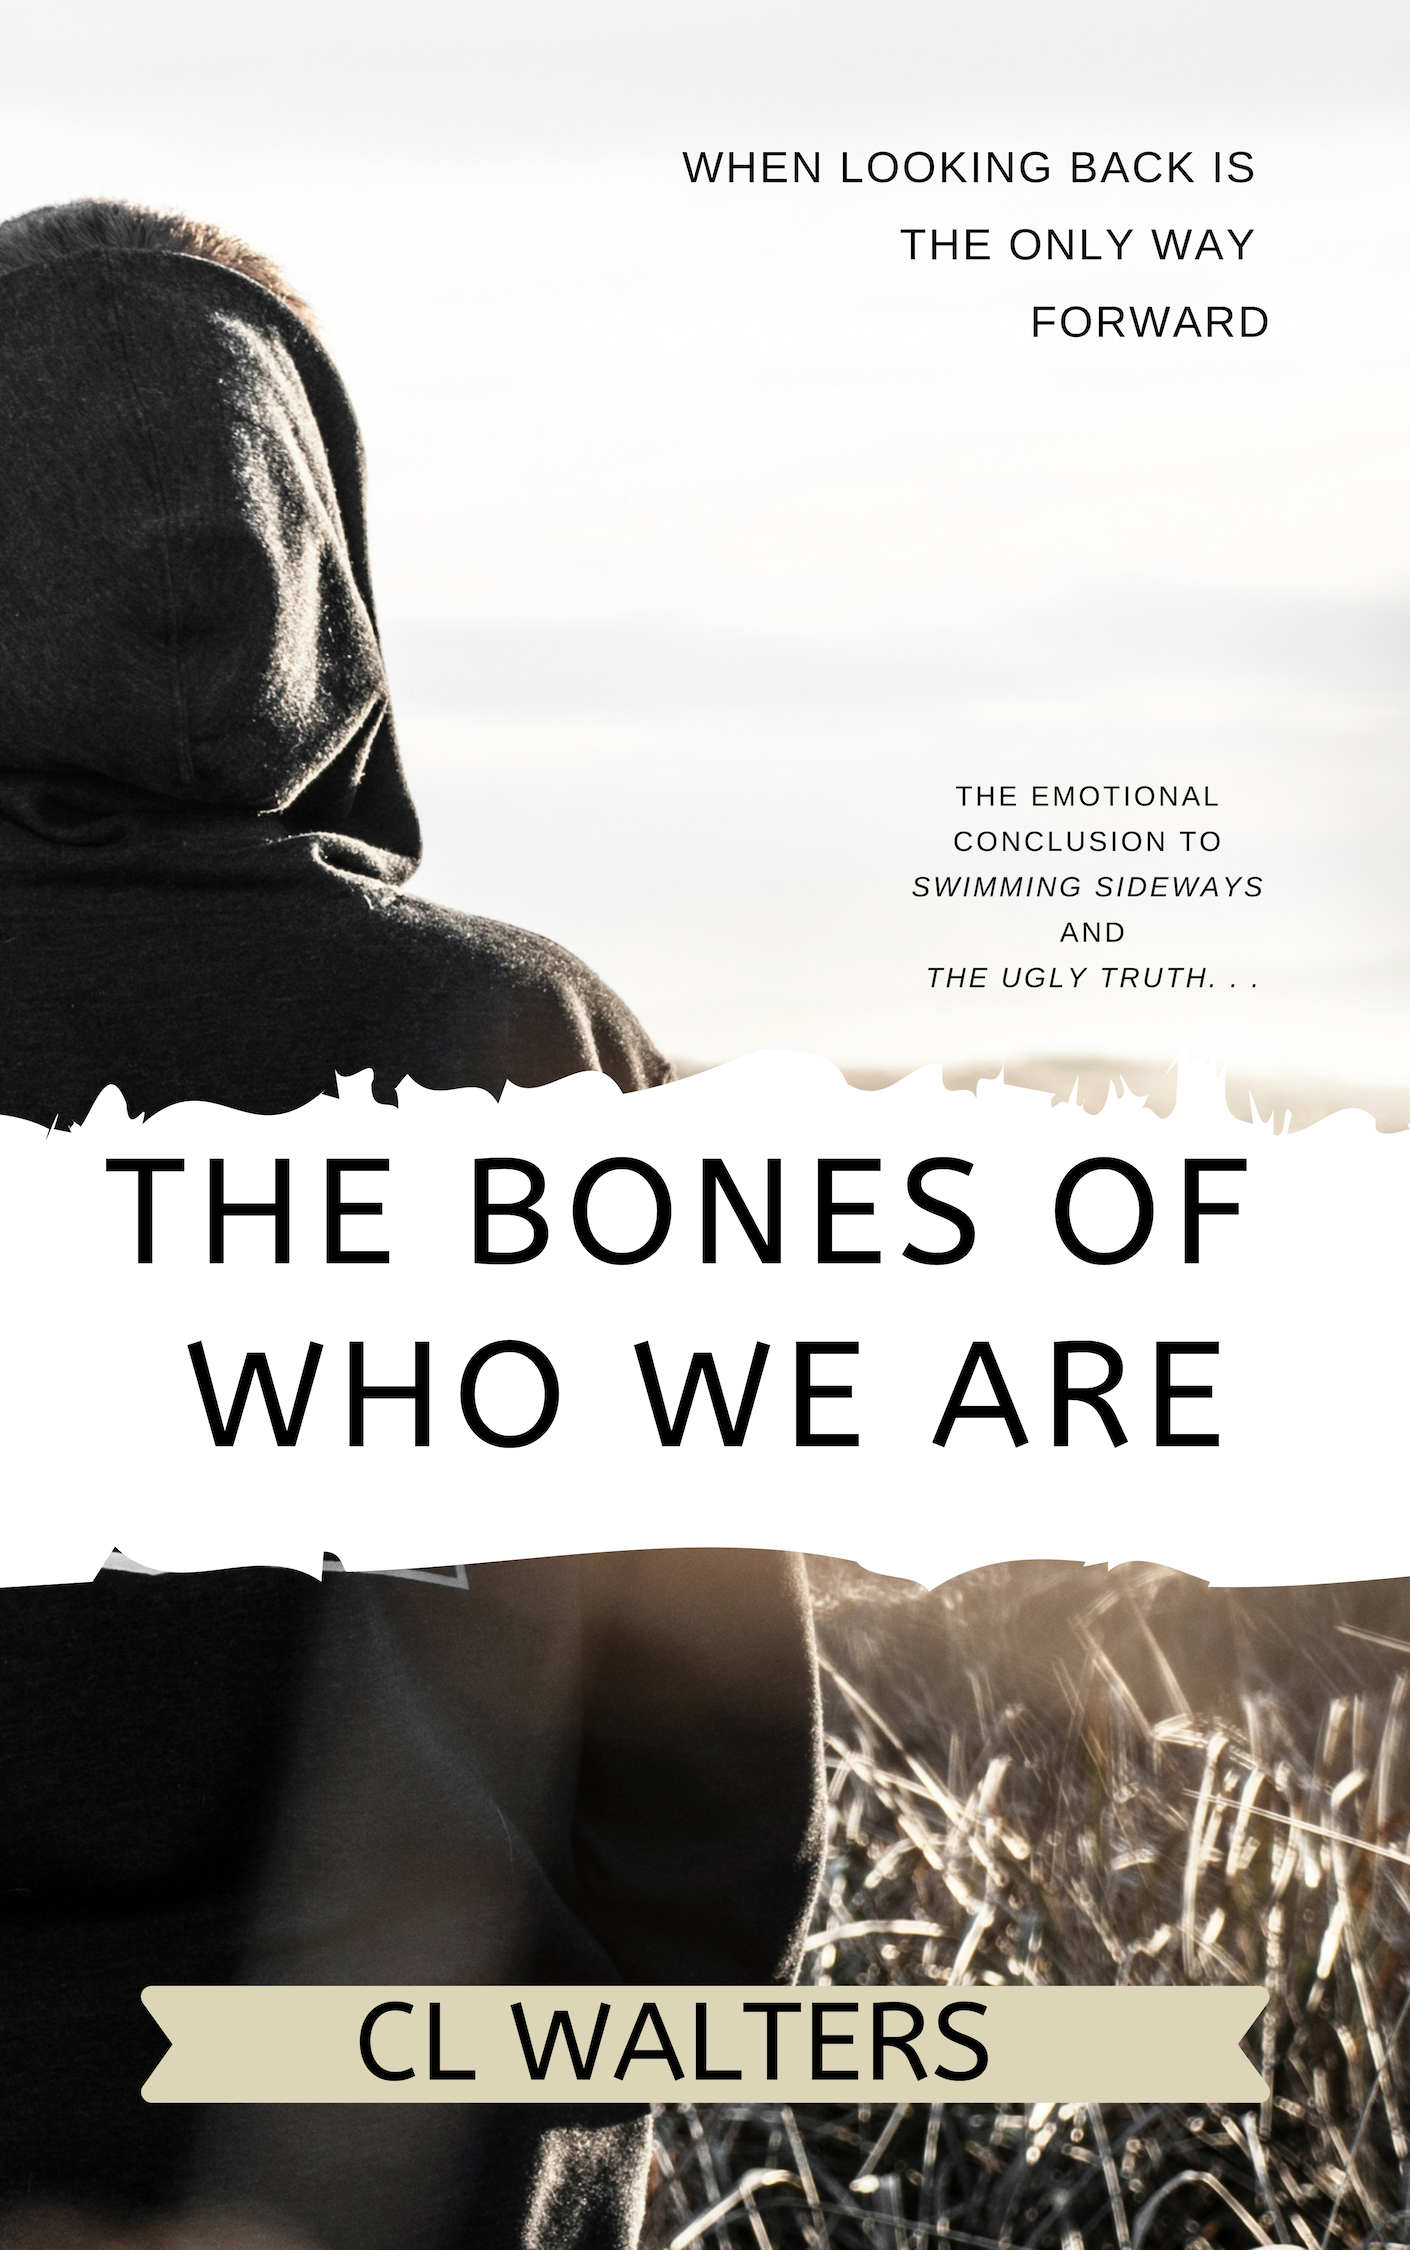 FINAL - The Bones of Who We Are (1).png